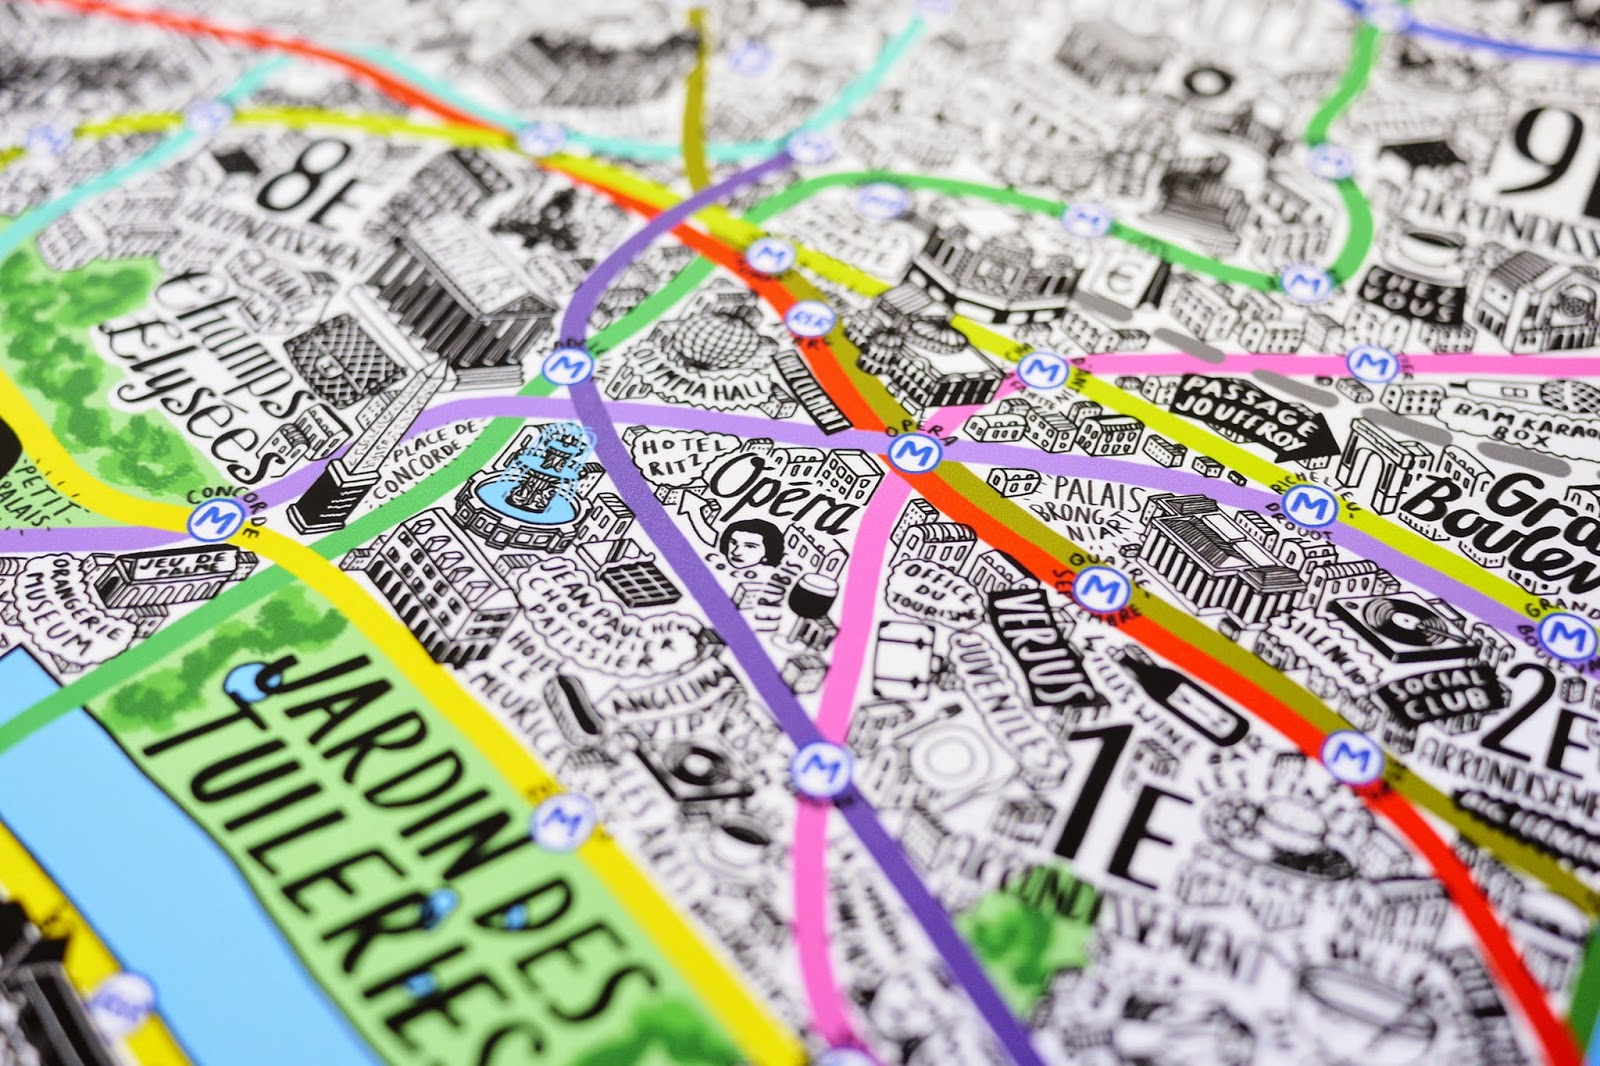 Wish List: Hand-Drawn Illustrated Map of Paris | Lost In Cheeseland on photography of paris, high resolution map of paris, simplified map of paris, fun map of paris, highlighted map of paris, religion map of paris, english map of paris, watercolor of paris, large map of paris, travel map of paris, white map of paris, detailed street map of paris, printable map of paris, outlined map of paris, antique map of paris, color map of paris, illustration of paris, interactive map of paris, history map of paris, sports map of paris,